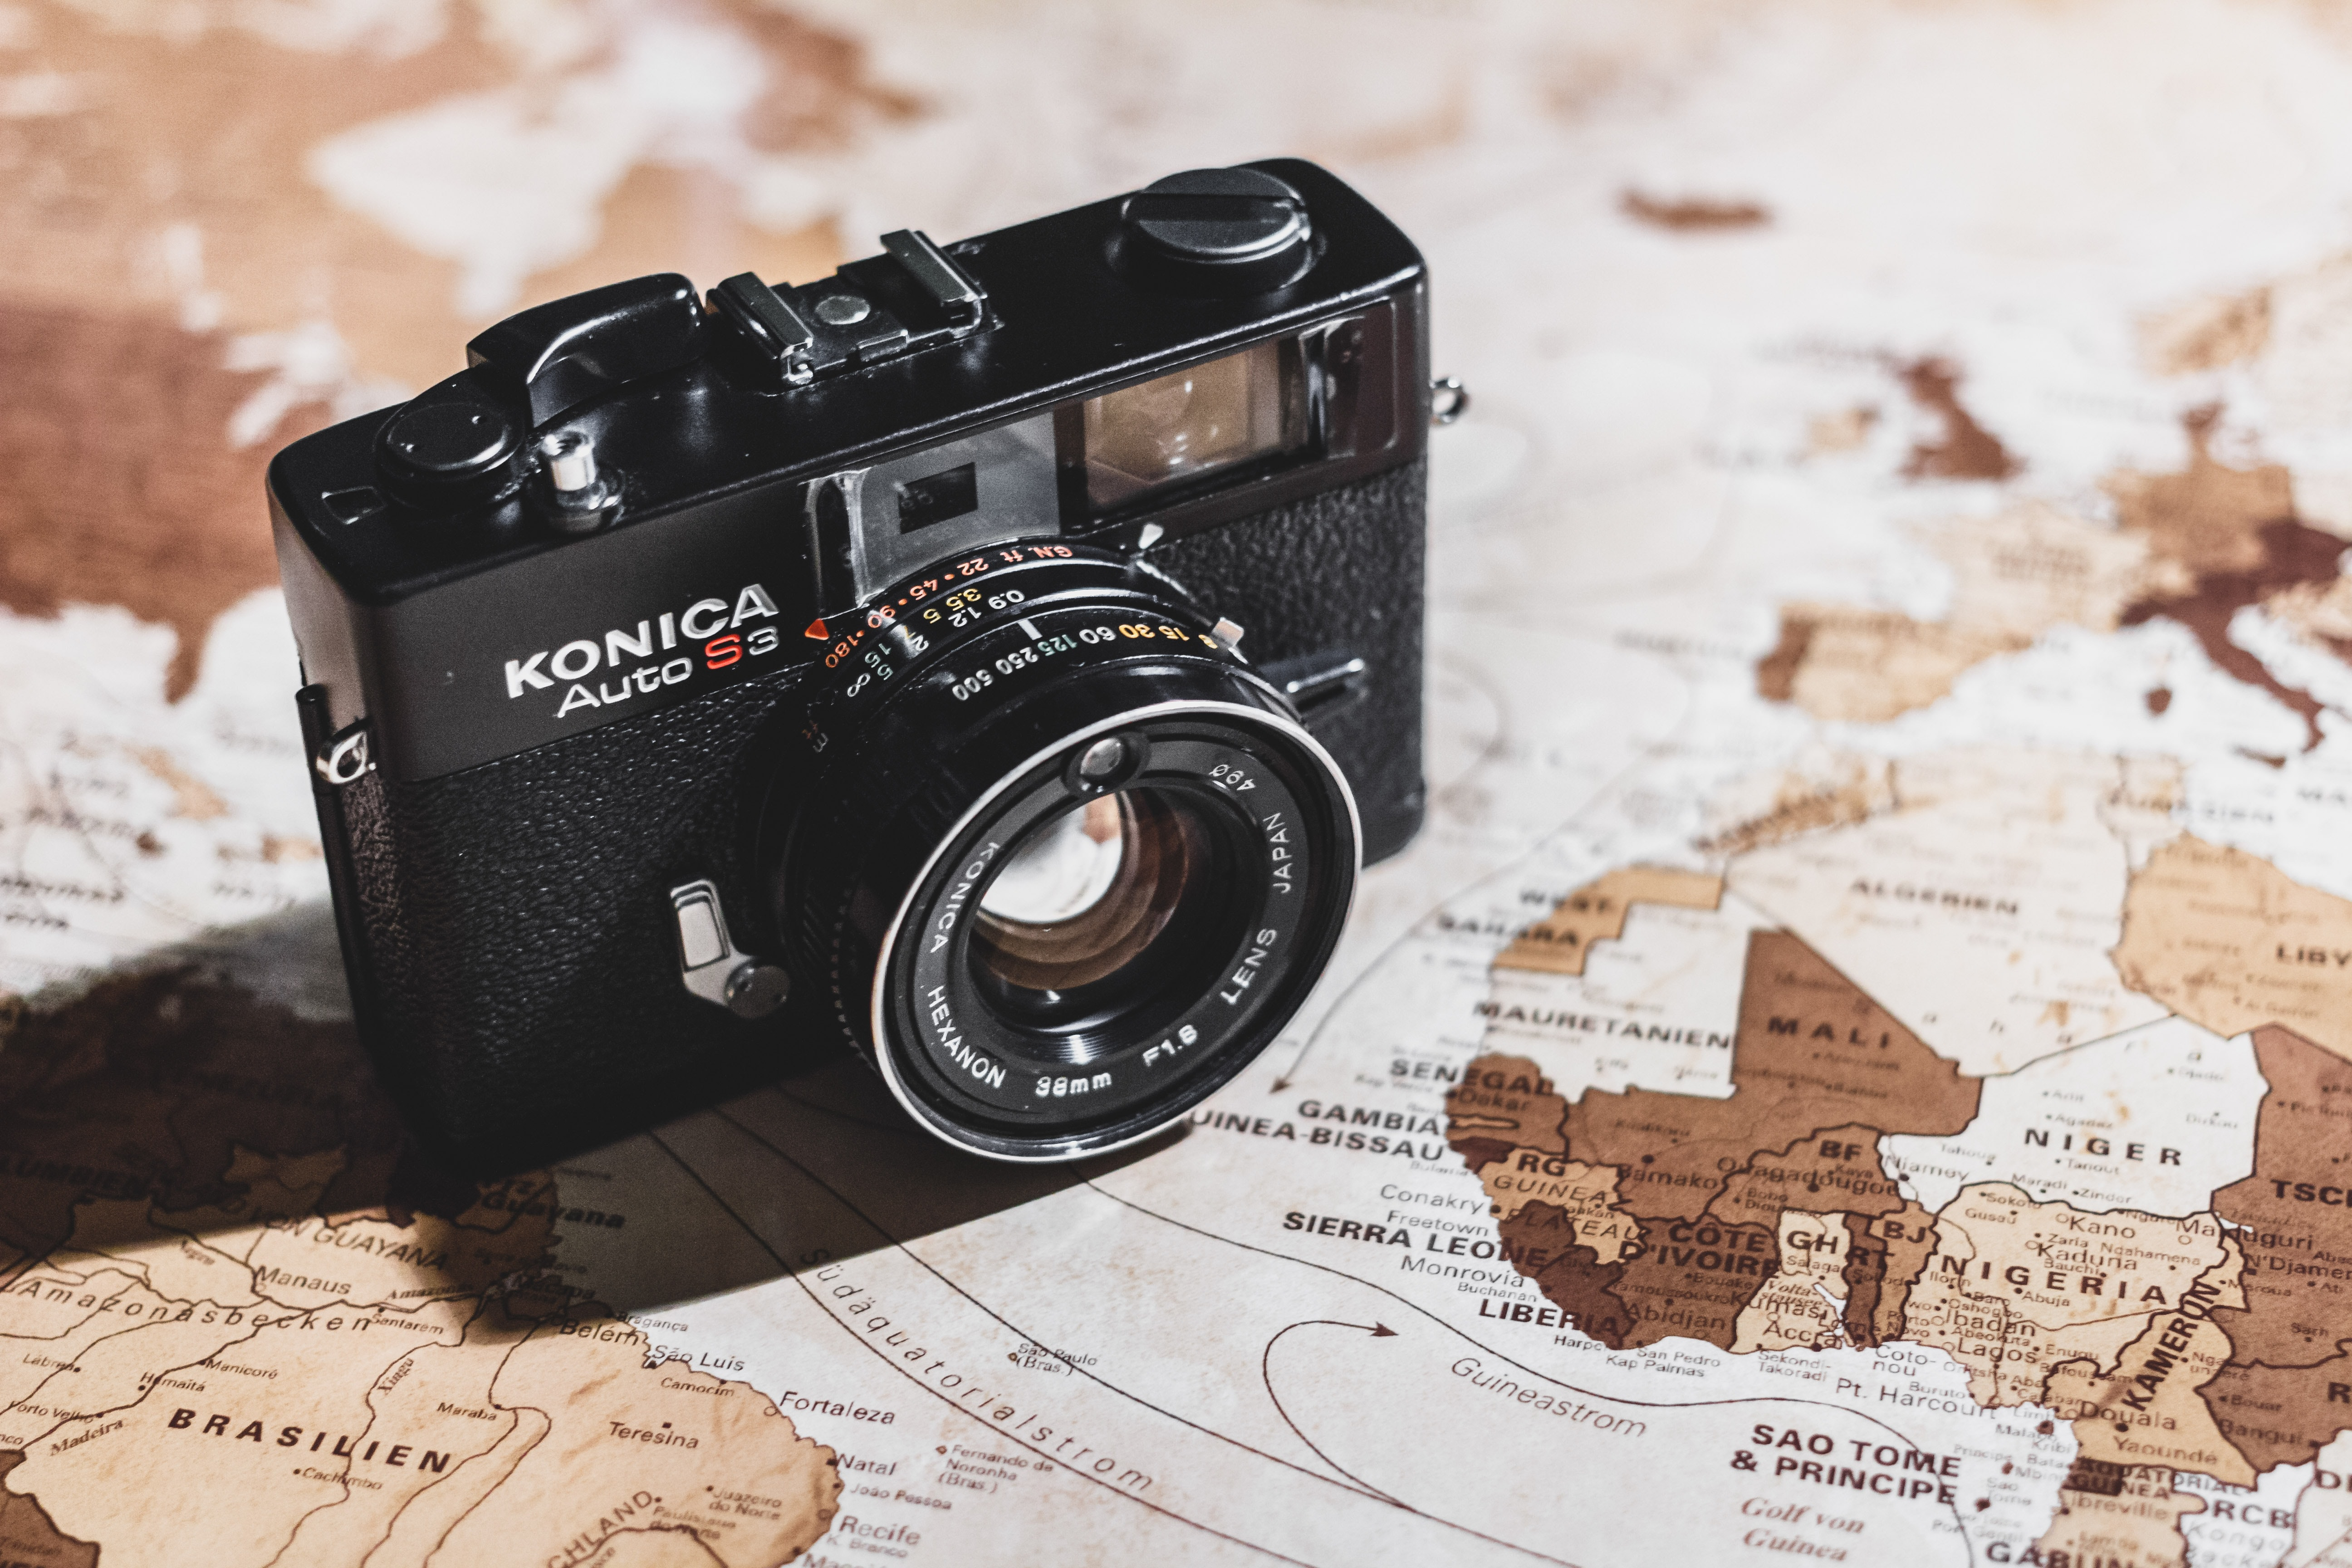 A close-up of a Konica Auto S3 camera on an old world map